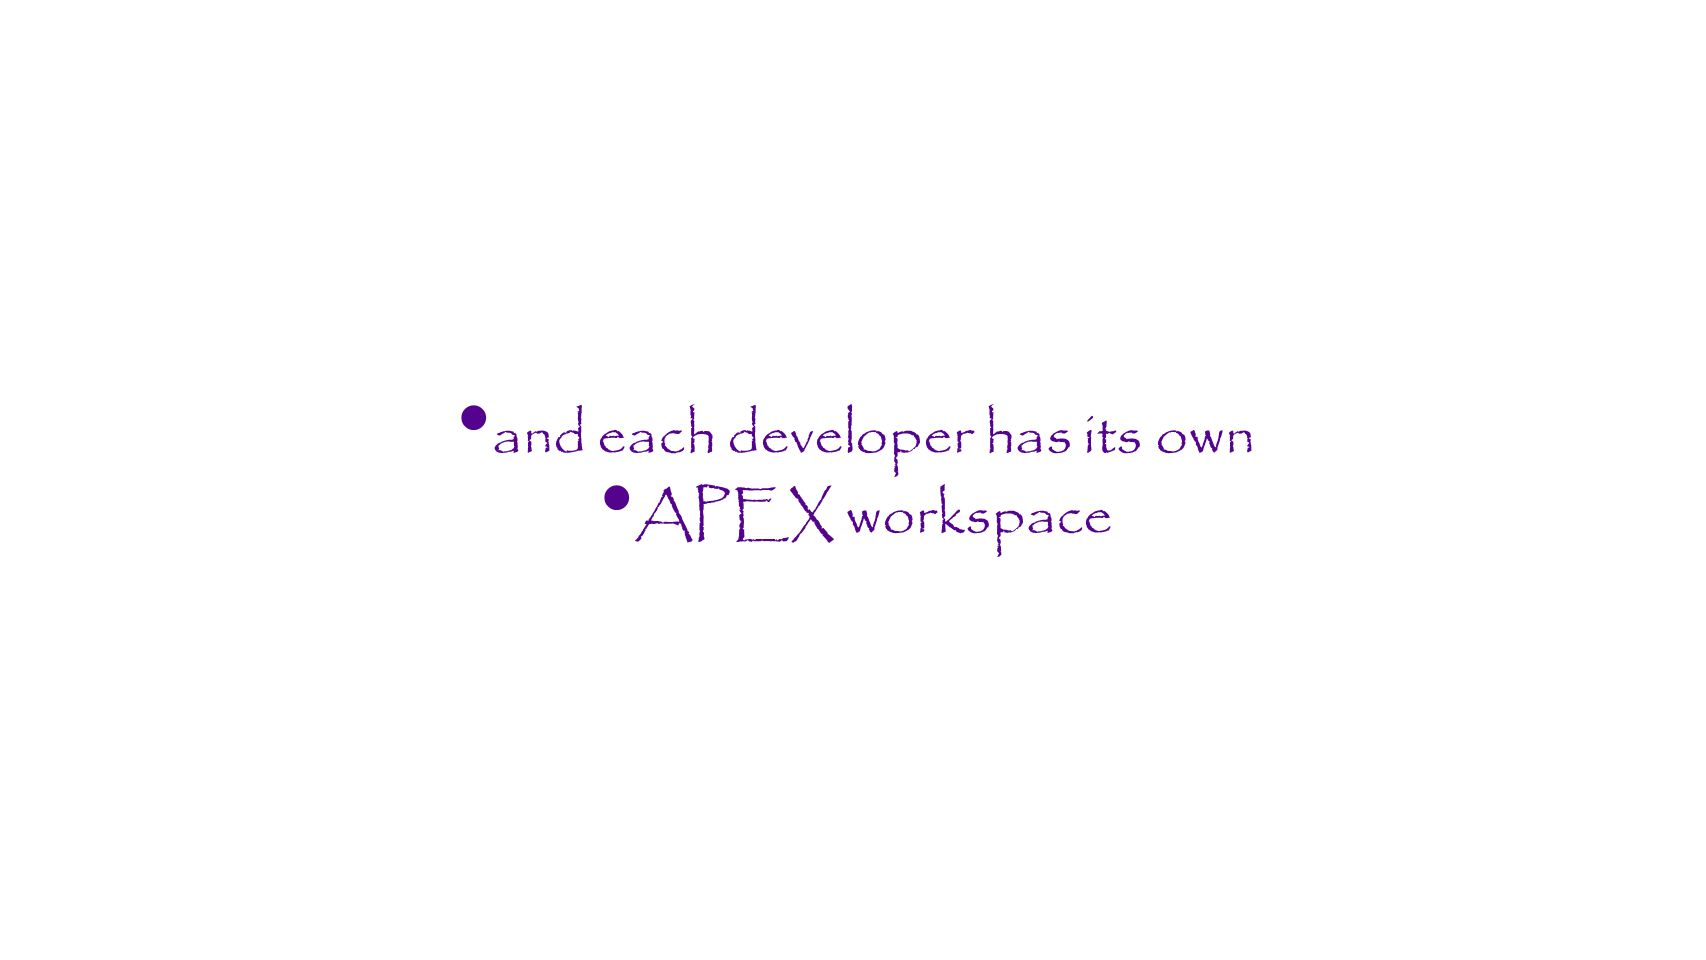 and each developer has its own